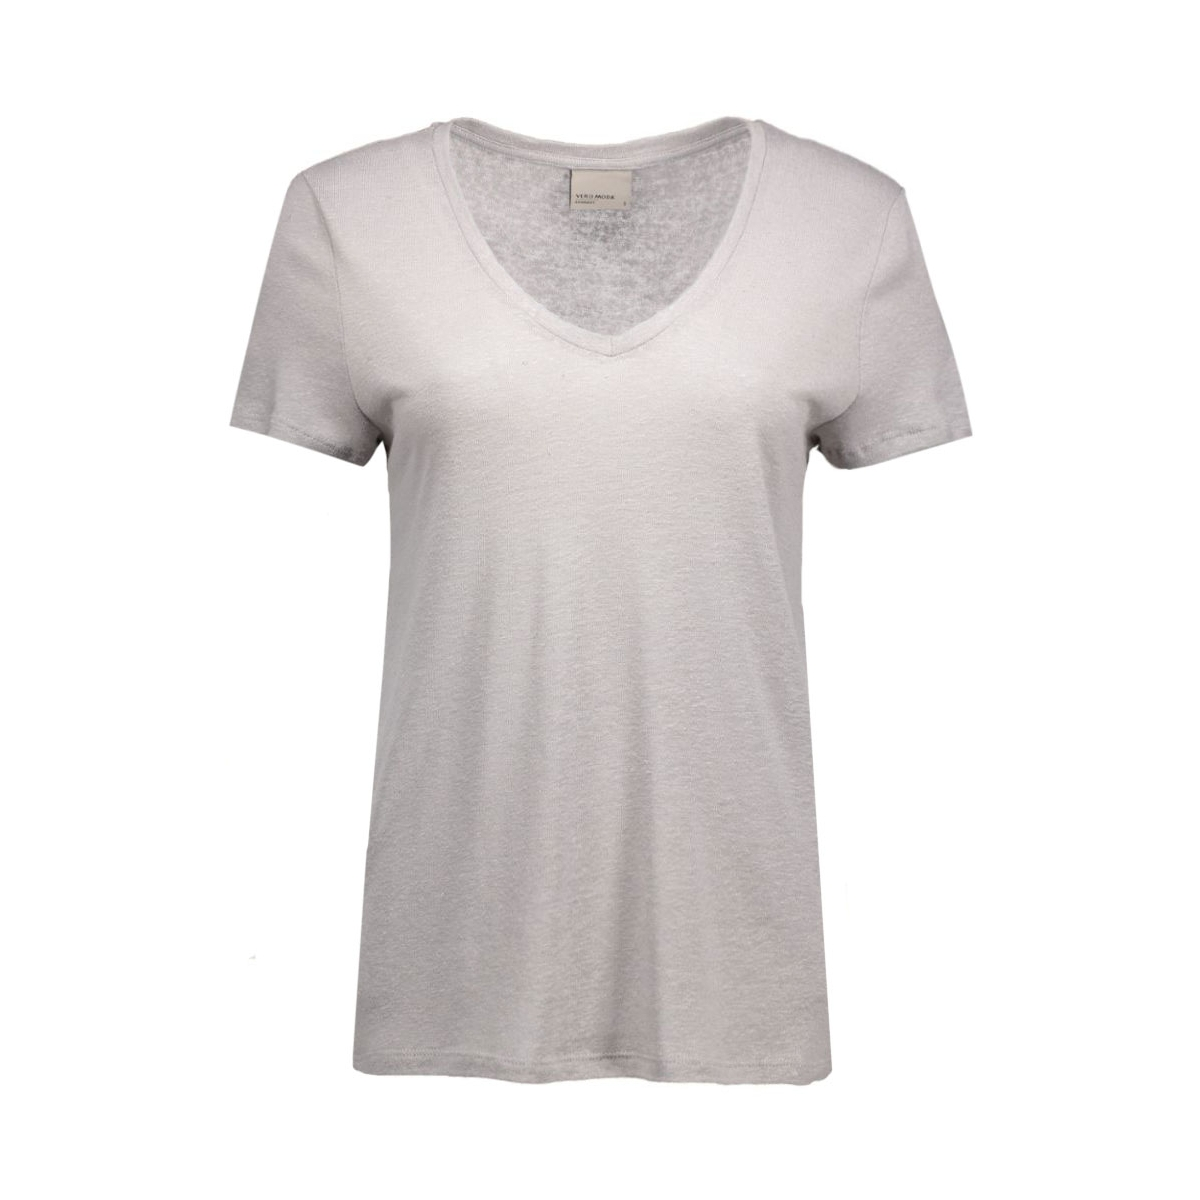 vmpure linen top 10157359 vero moda t-shirt medium grey melange